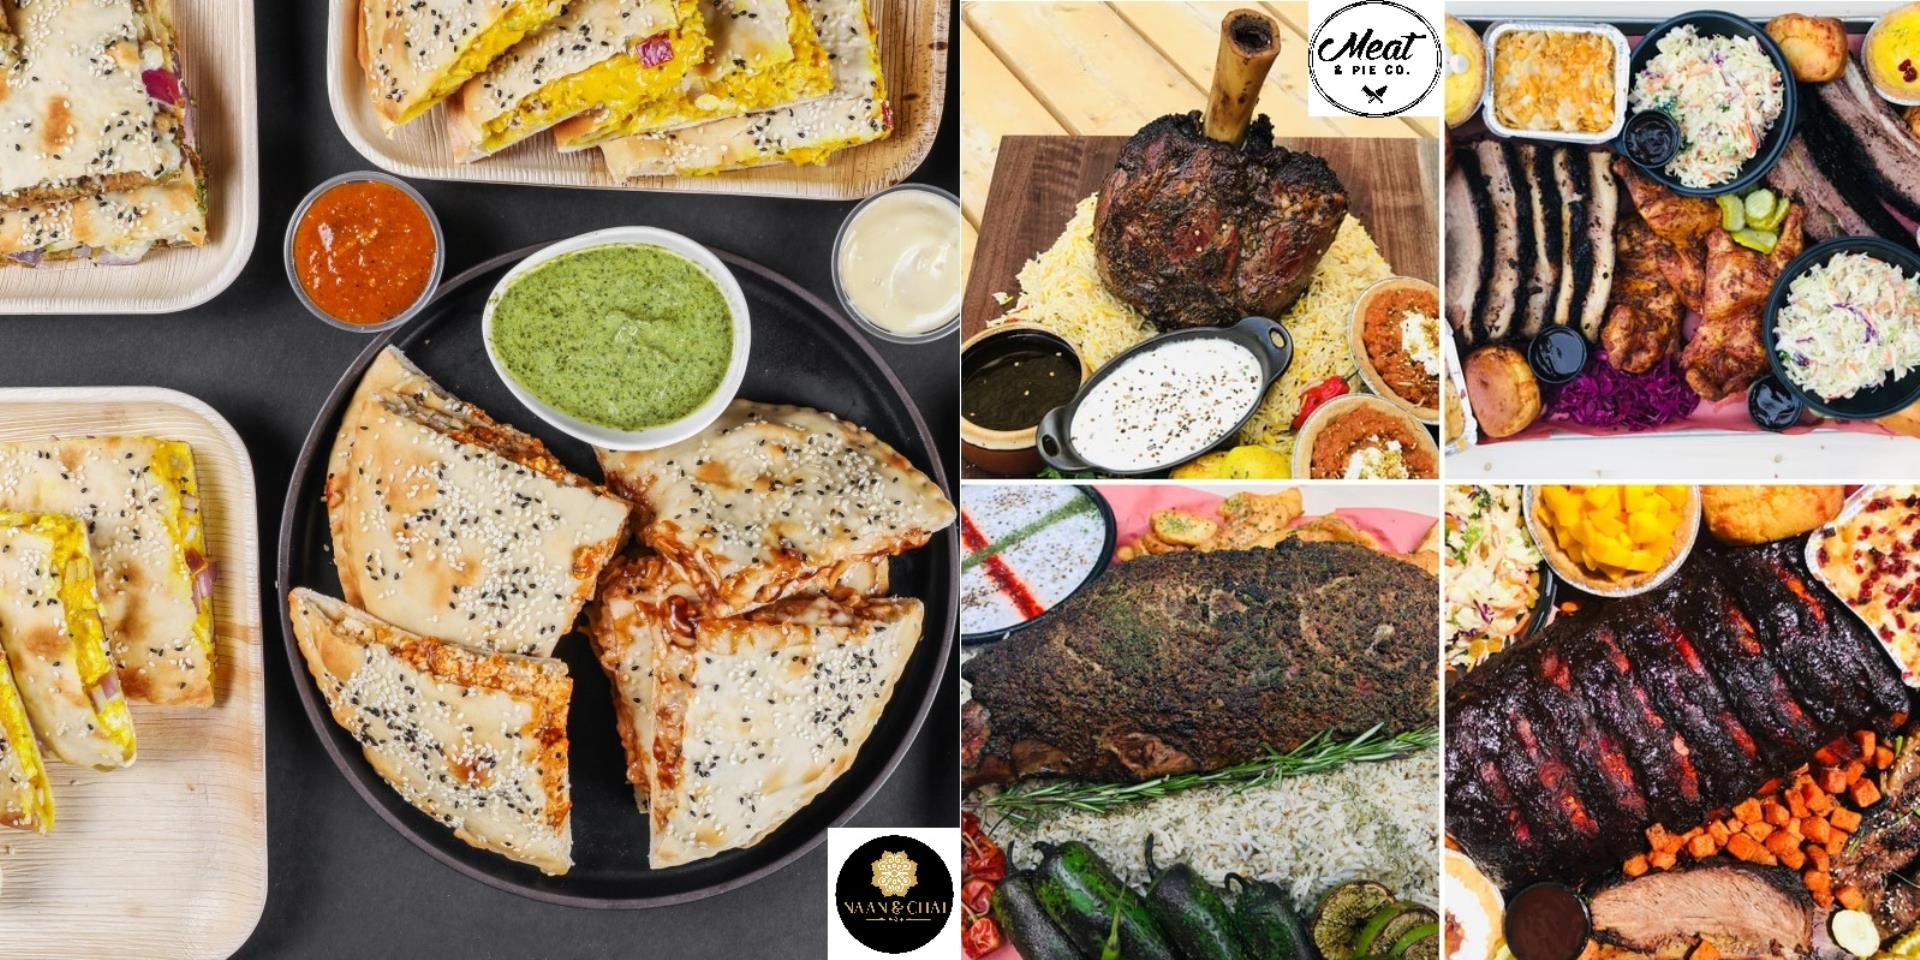 Naan & Chai   |   Meat & Pie Co. Restaurant - Picture